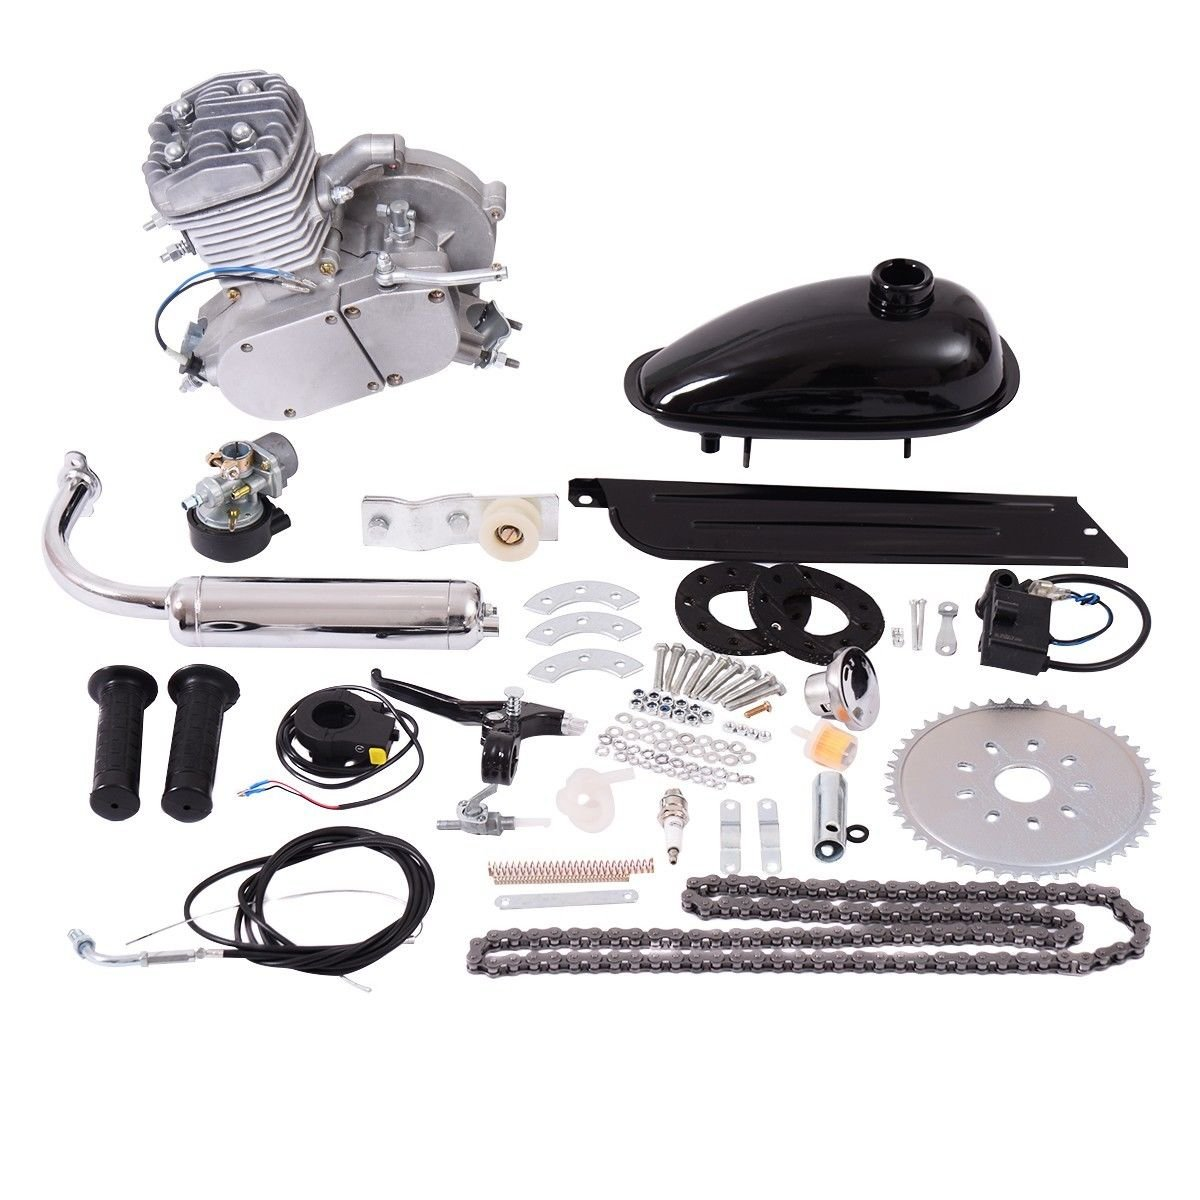 Goplus 80cc 2-Stroke Bicycle Gasoline Motorized Gas Engine Motor Kit (Silver)